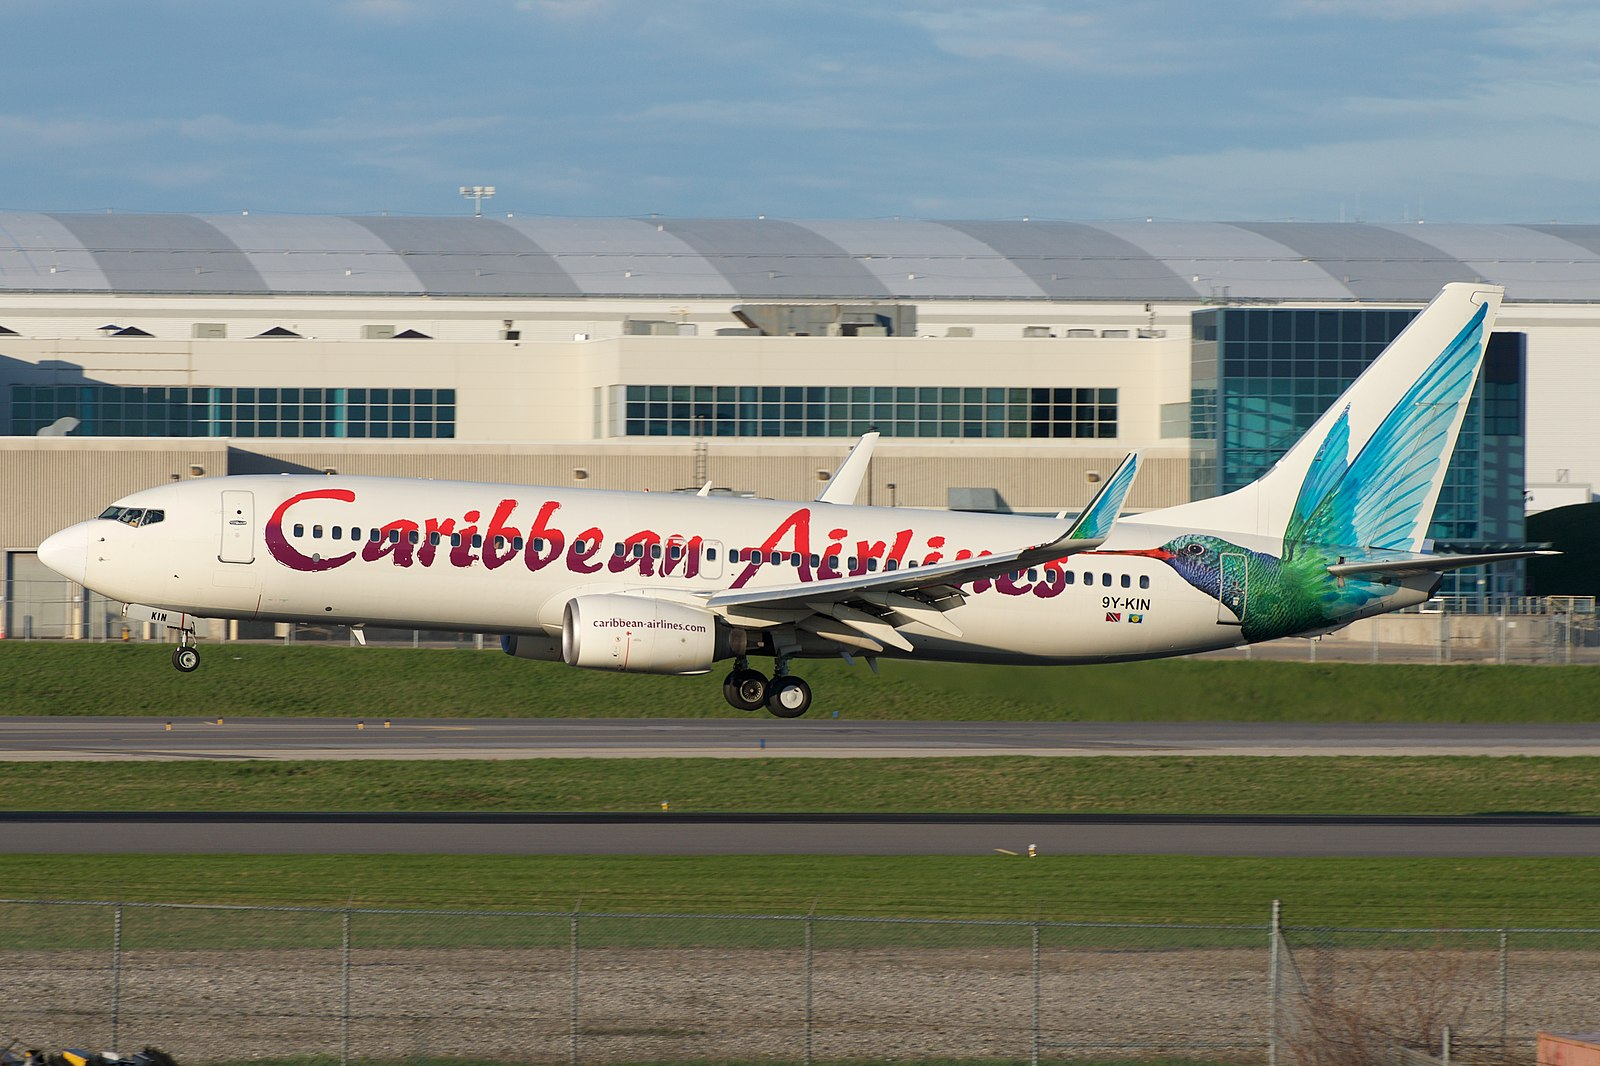 KIN Airport is a hub for Caribbean Airlines.